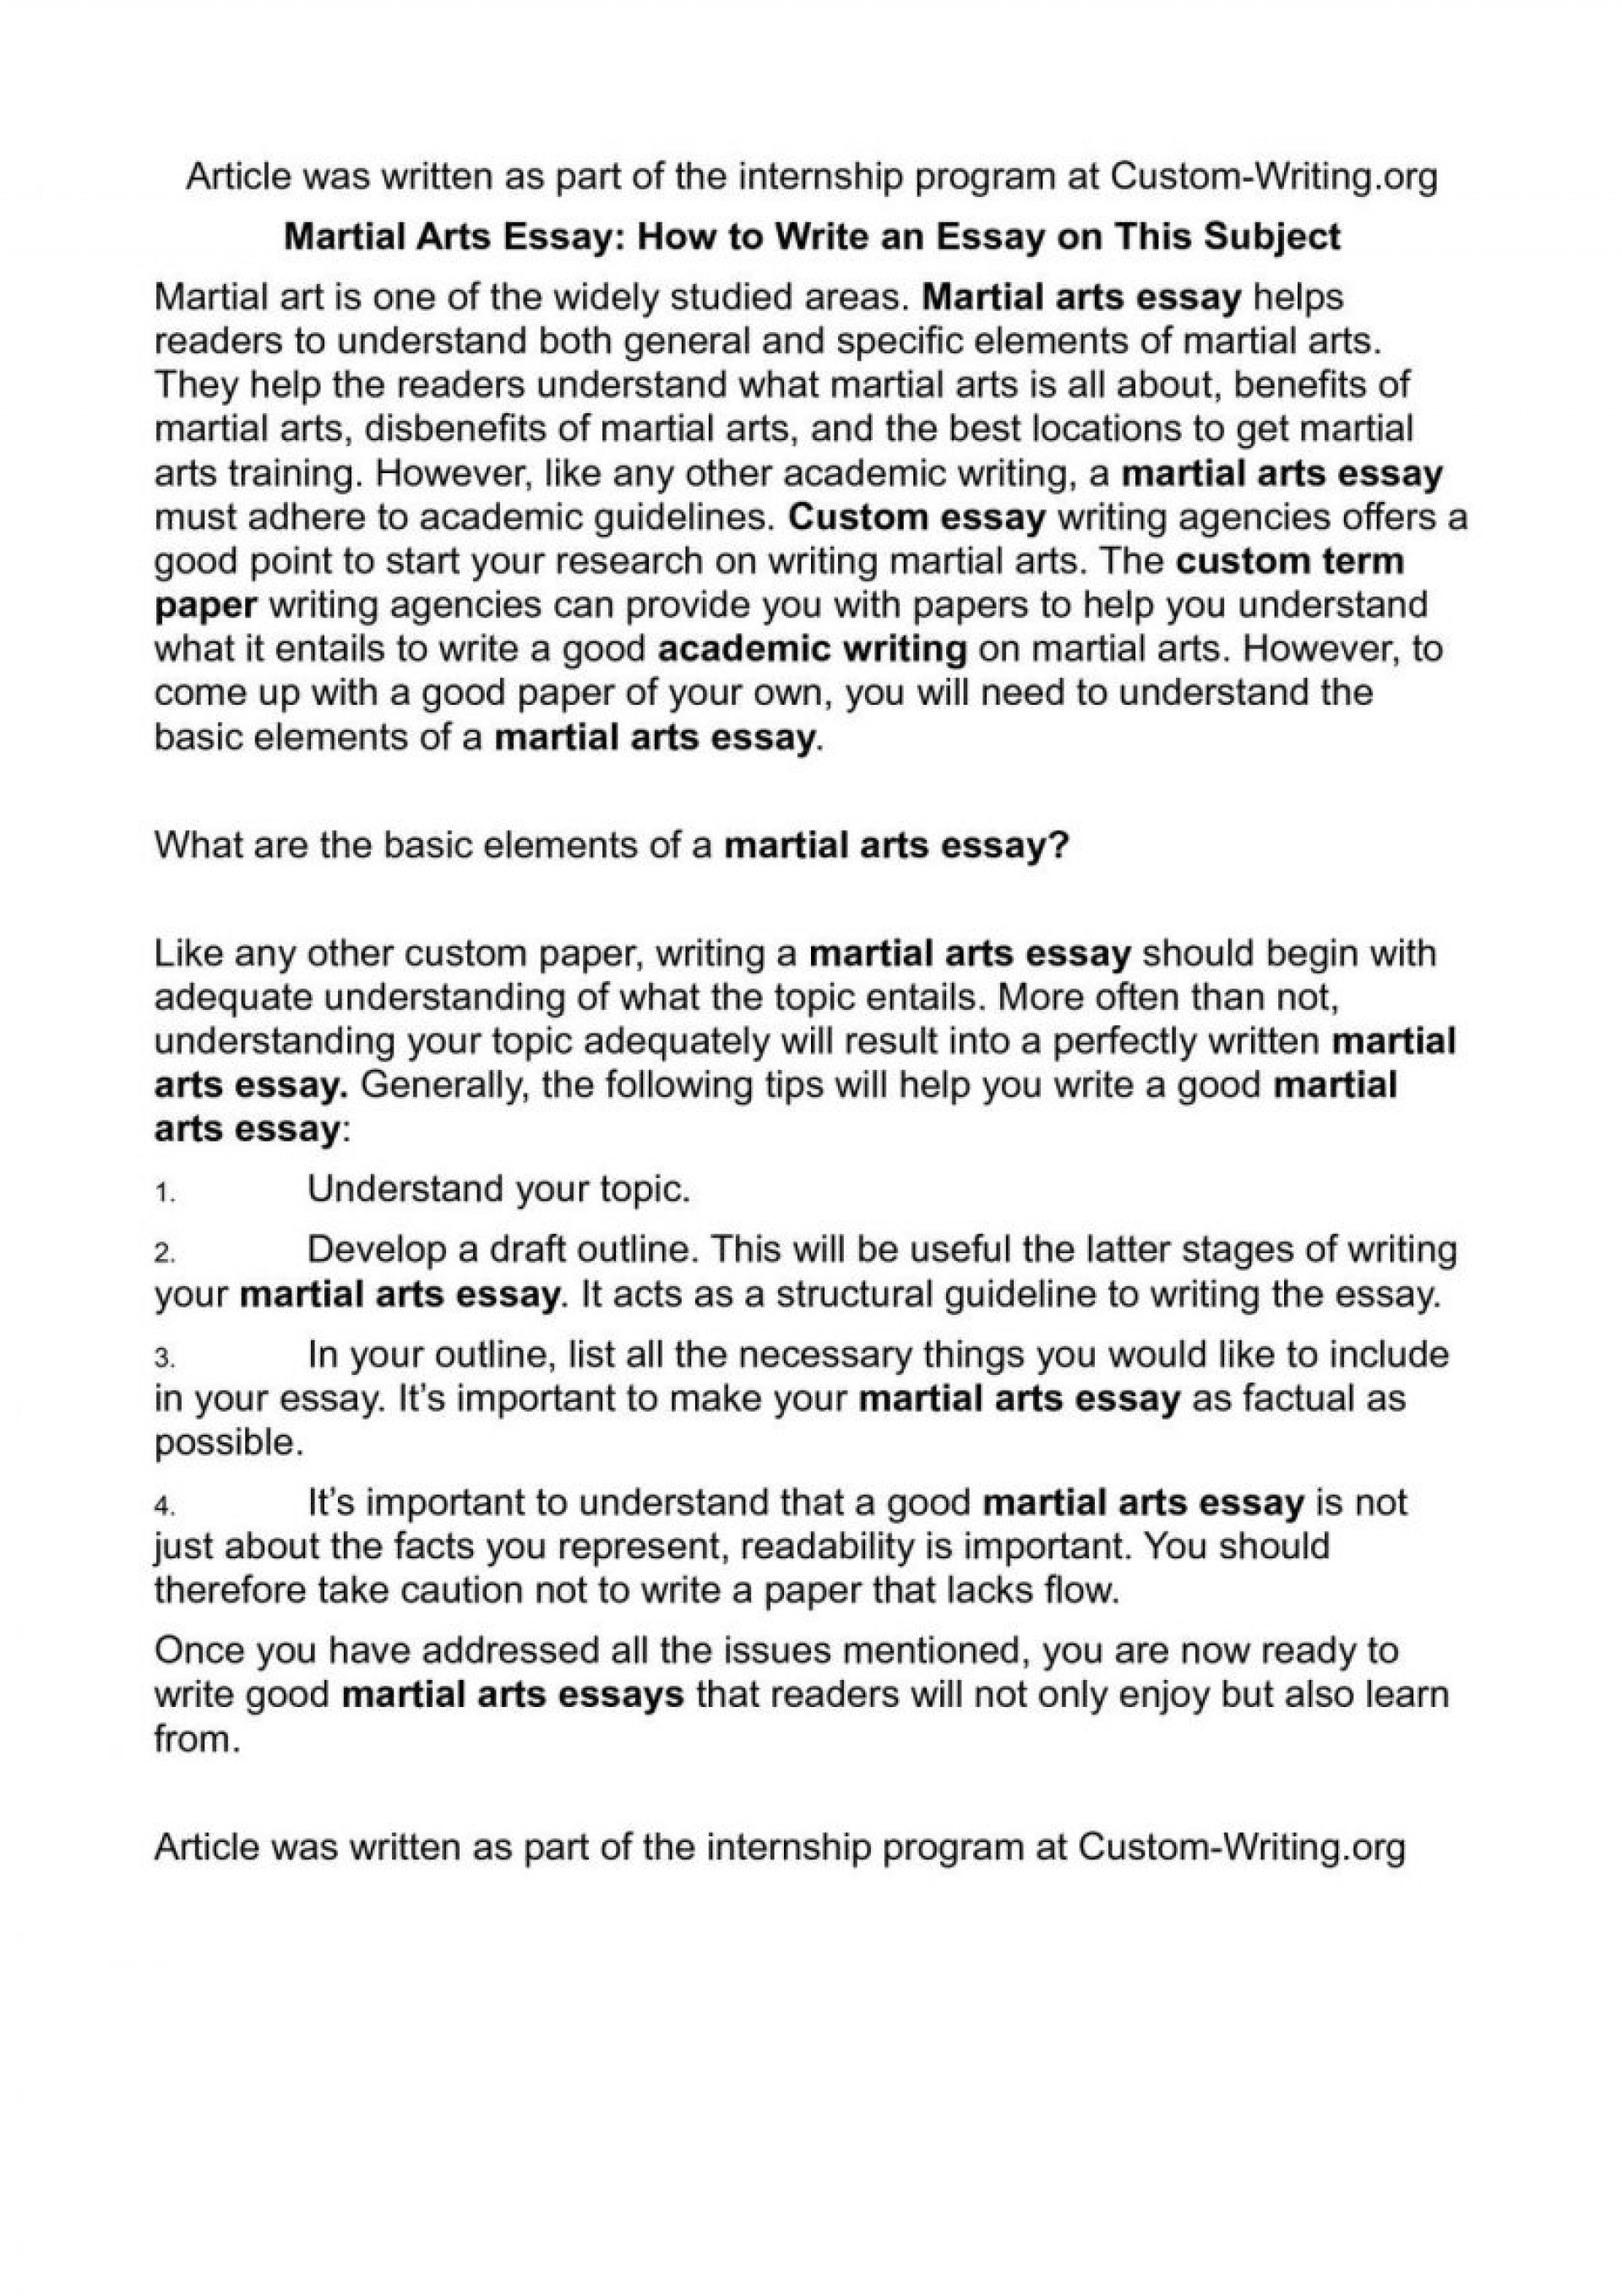 020 Research Paper Cheap Help Me Write My College Essay Zoology How To Application First Remarkable 1920